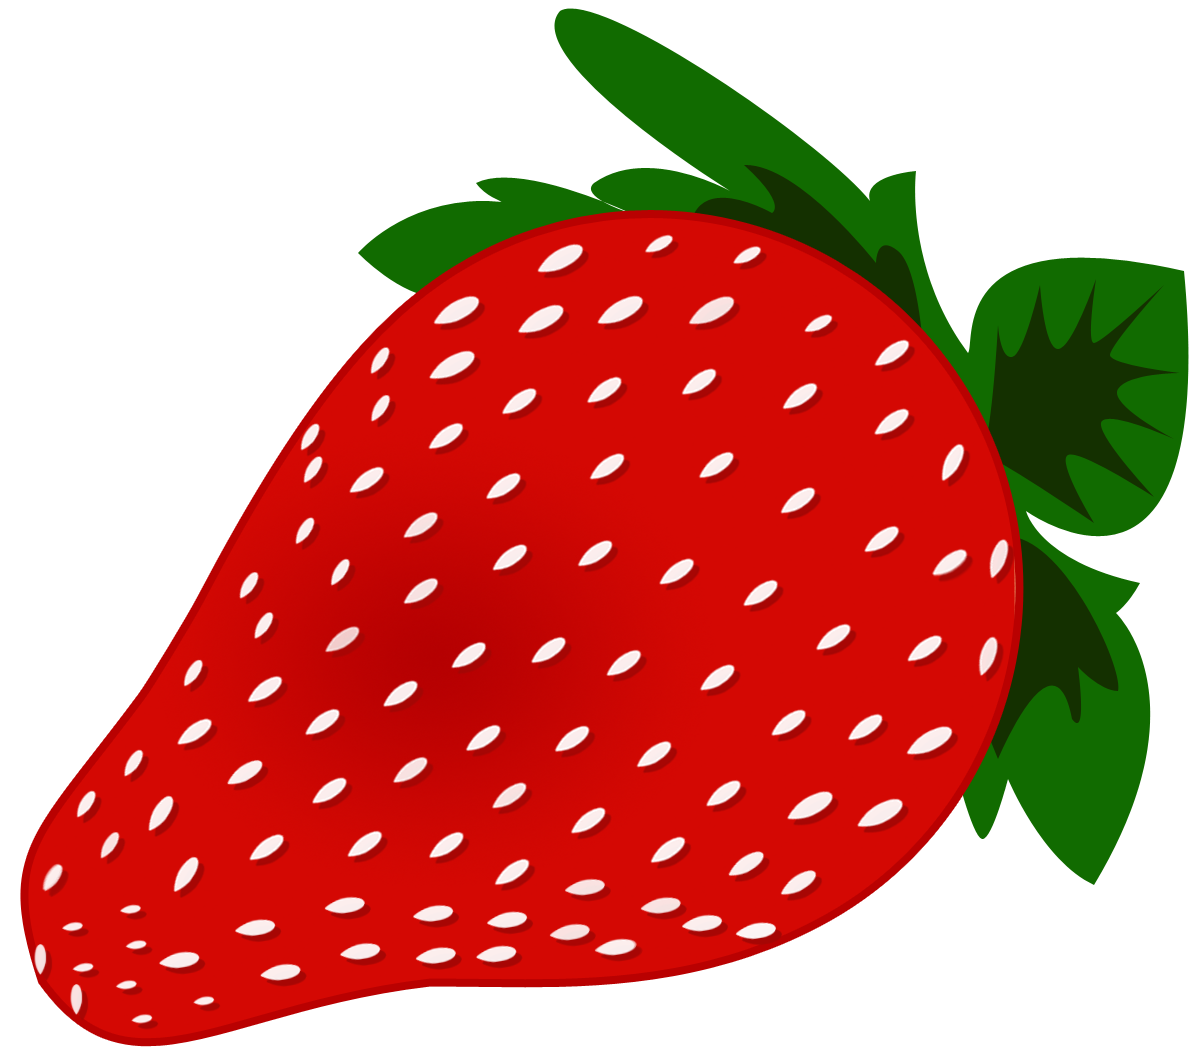 Free Strawberries Cliparts, Download Free Clip Art, Free.